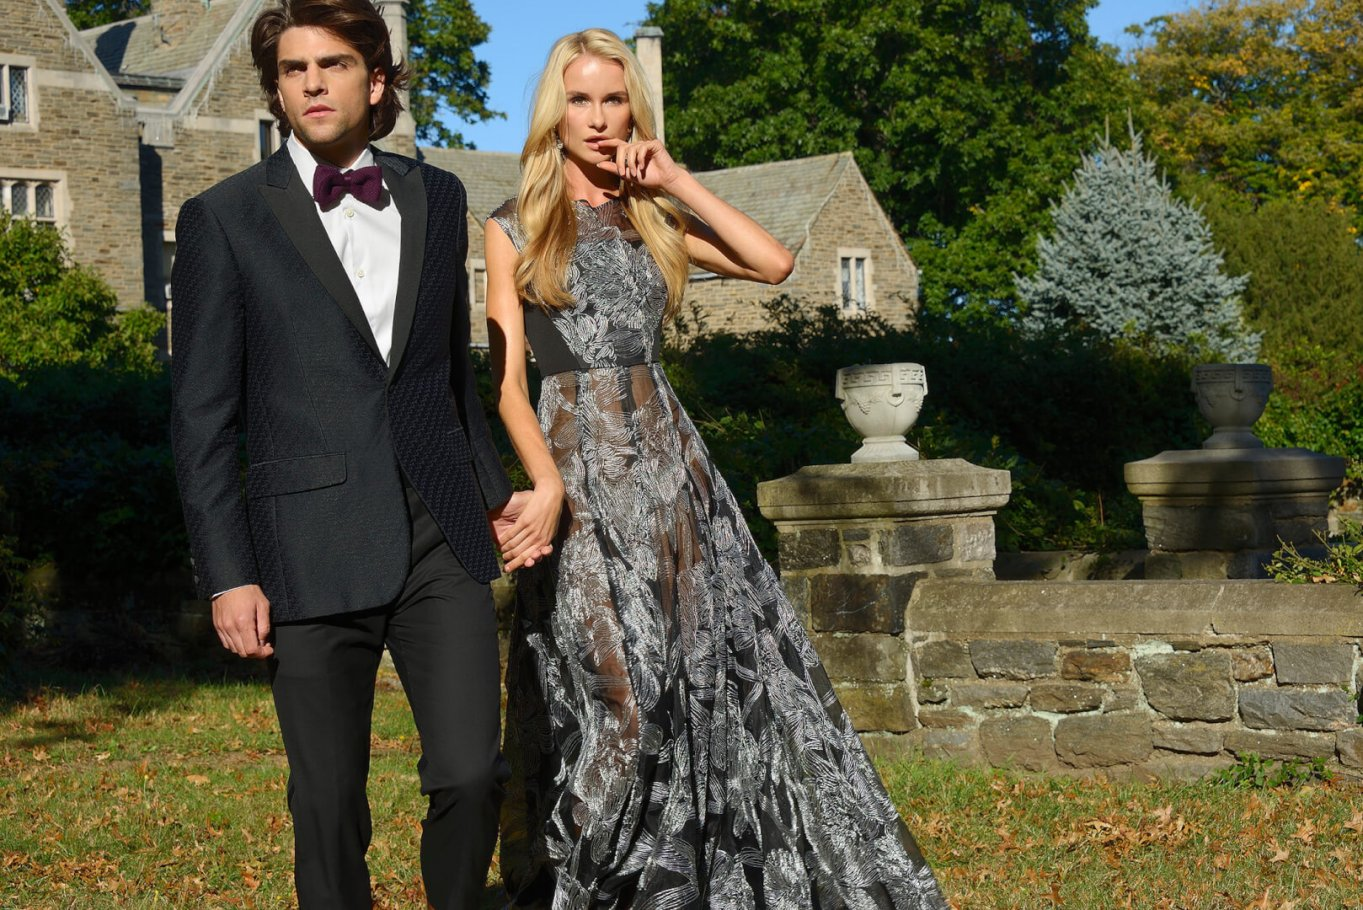 Fashion Editorial: Couple at Country Estate